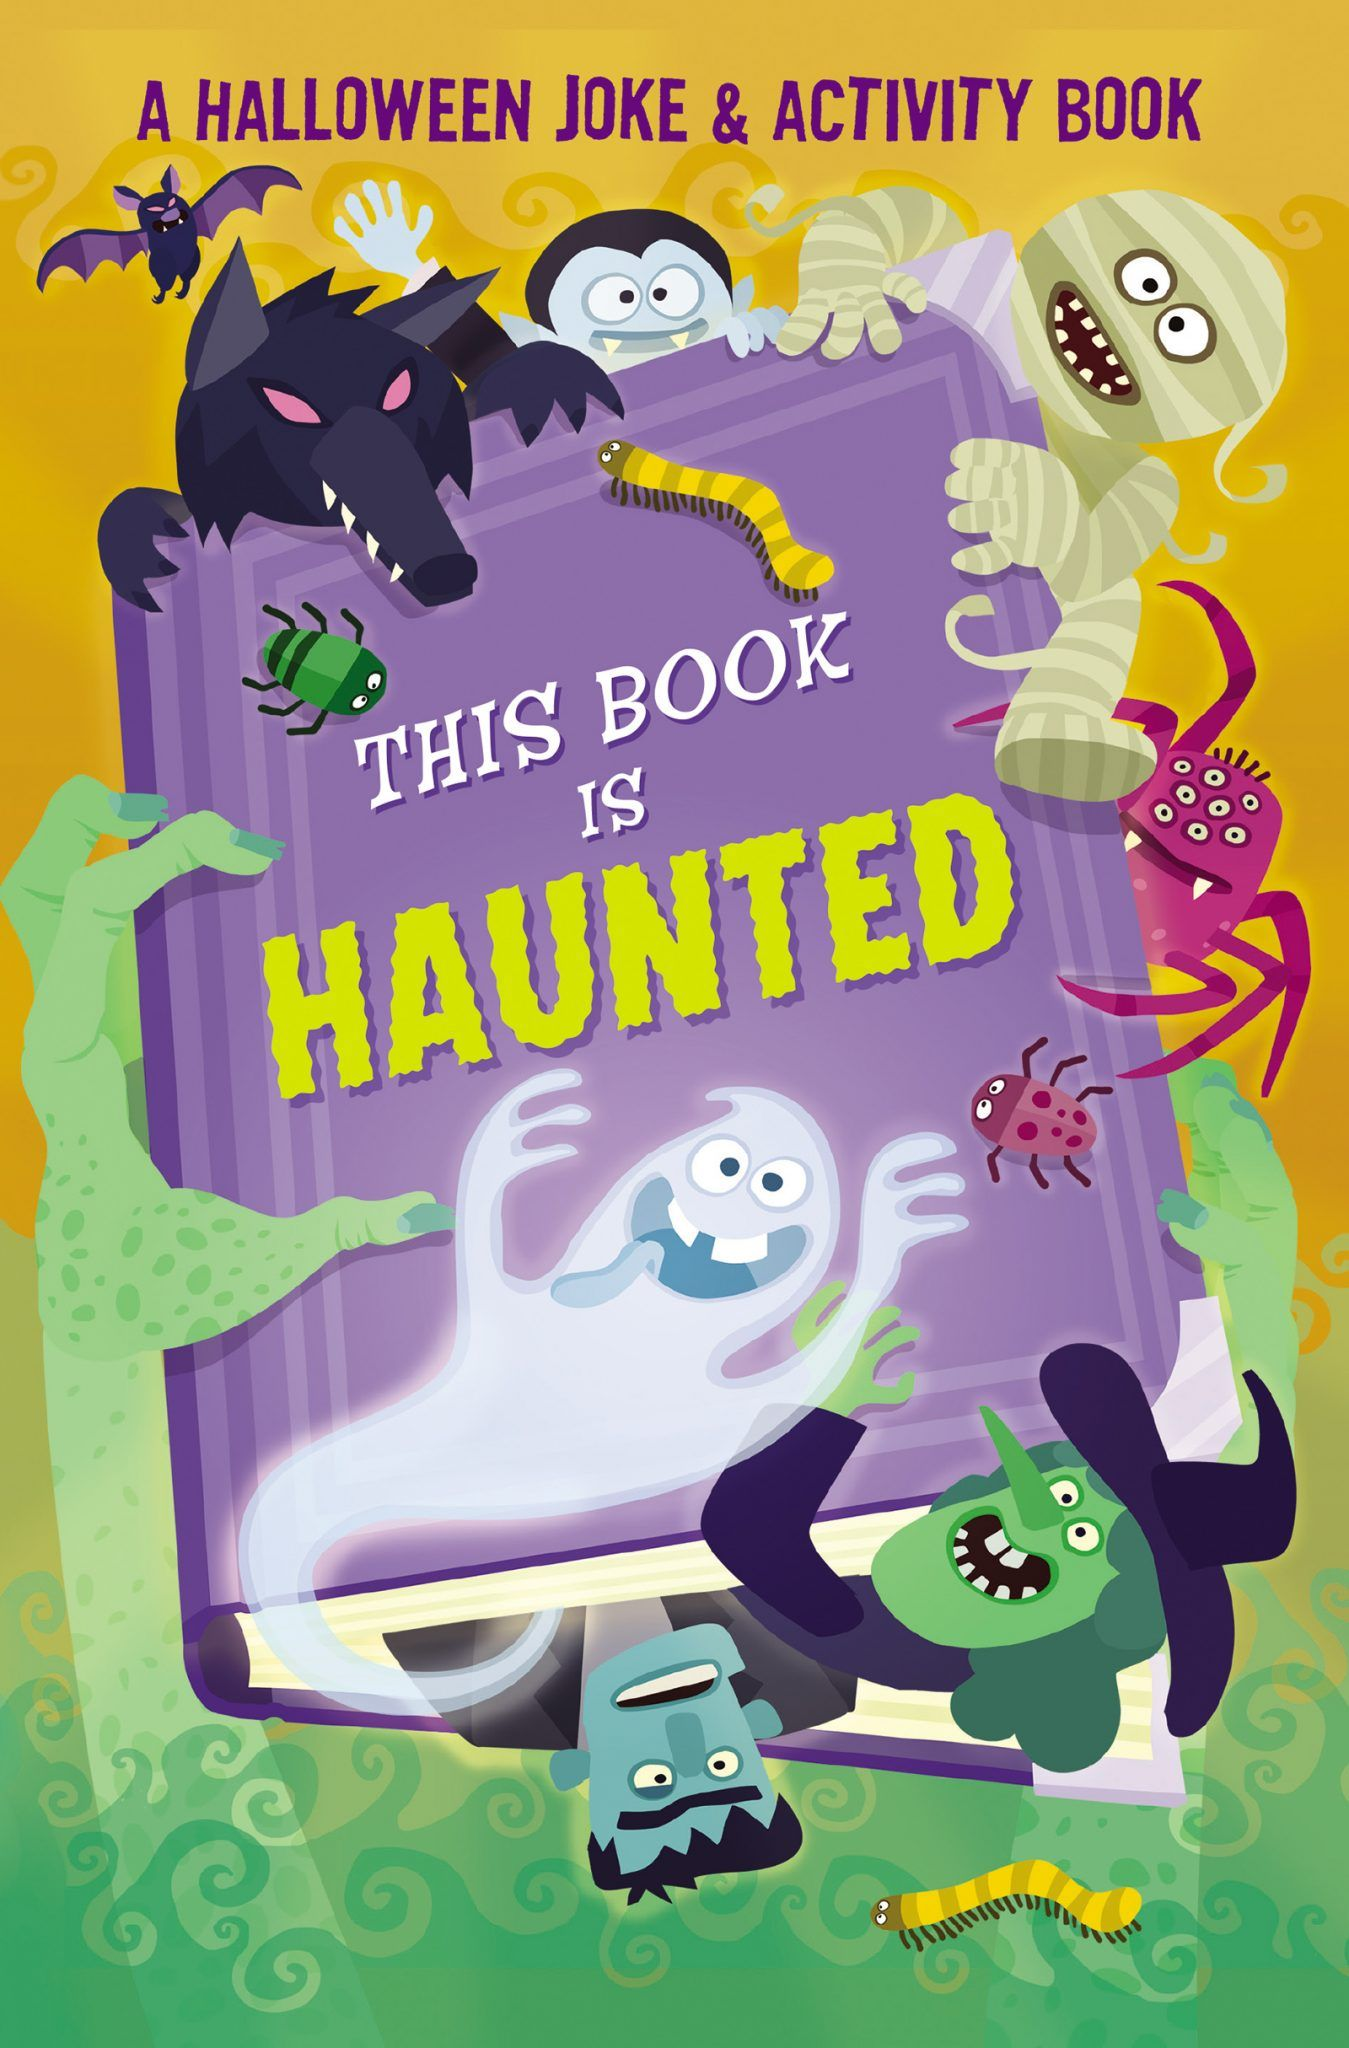 This Book is Haunted! A Halloween Joke & Activity Book